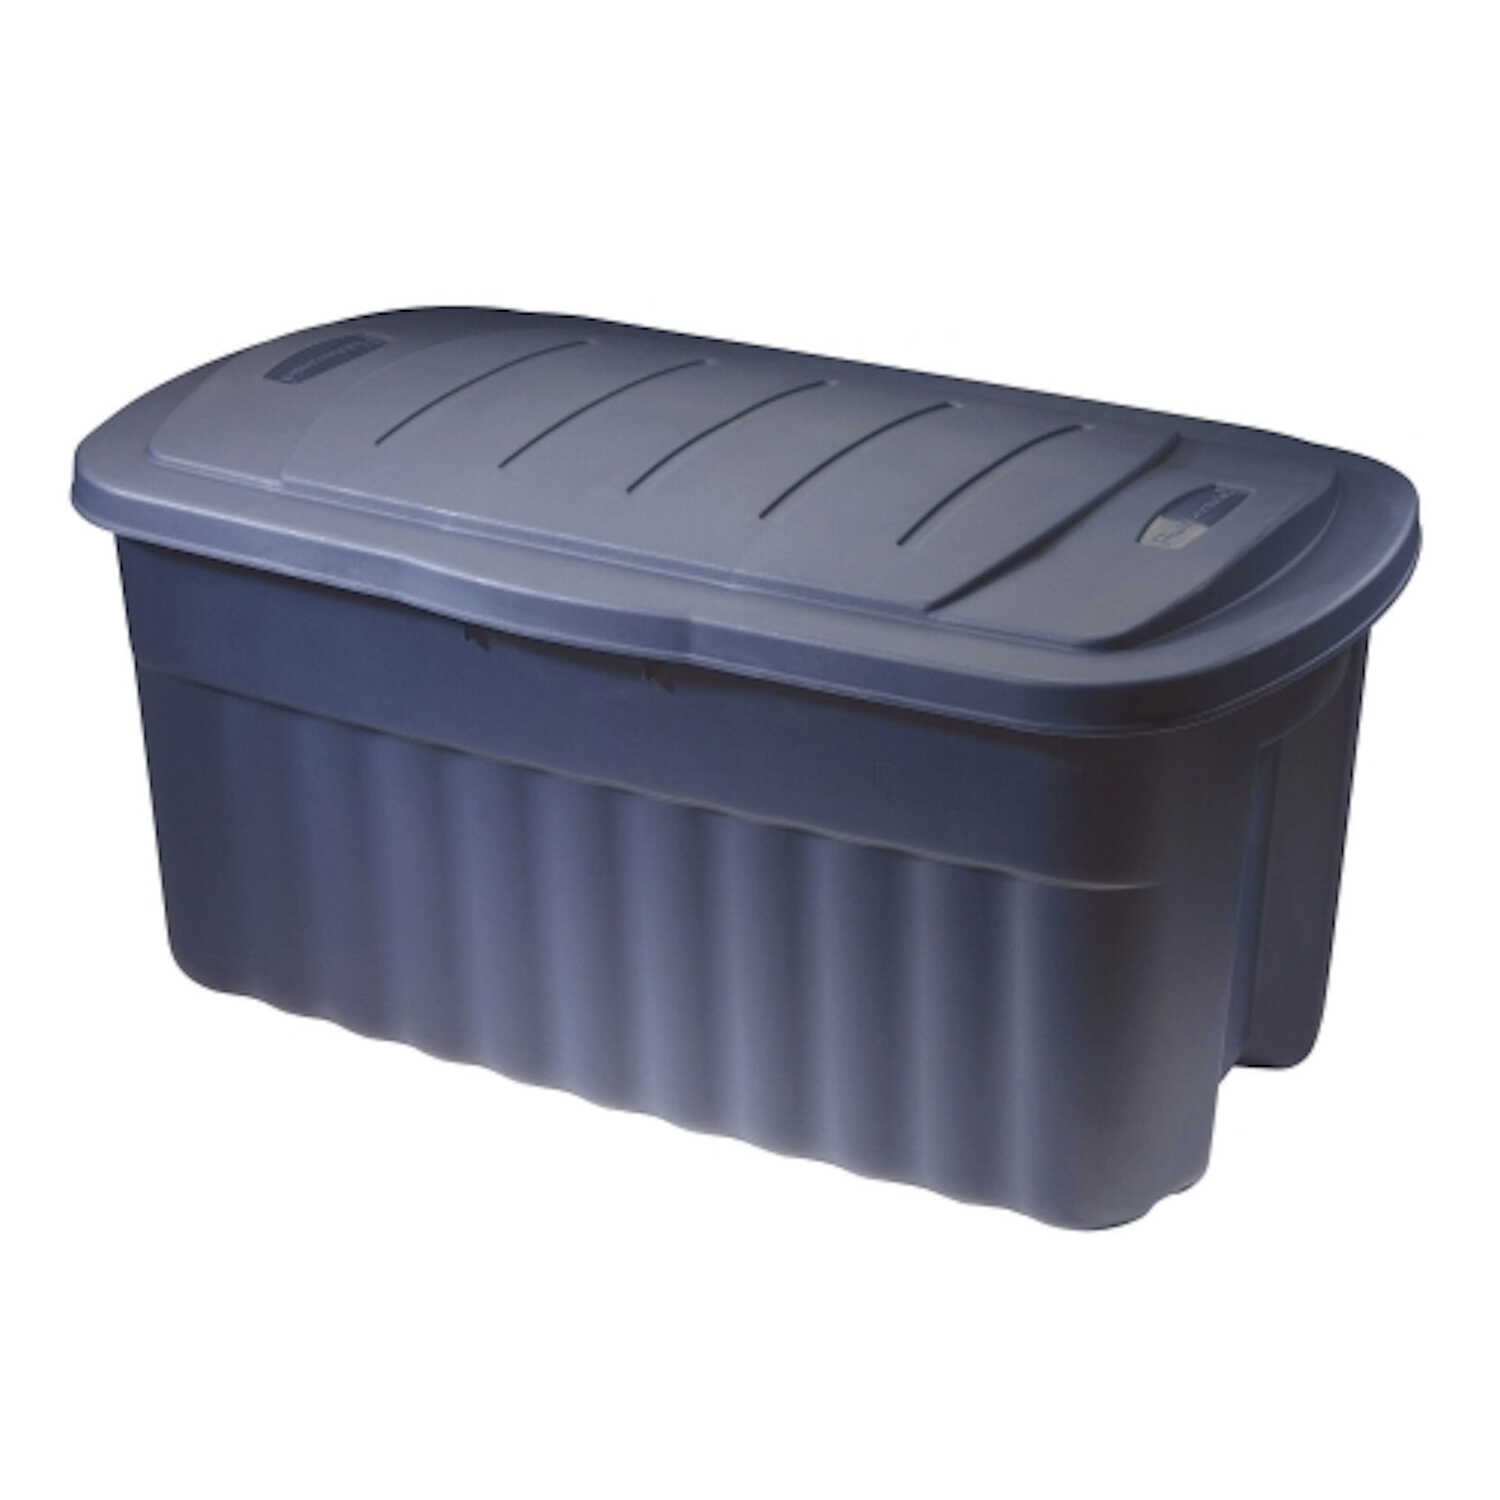 Rubbermaid  Roughneck  21.3 in. H x 18.3 in. W x 36.9 in. D Stackable Storage Box